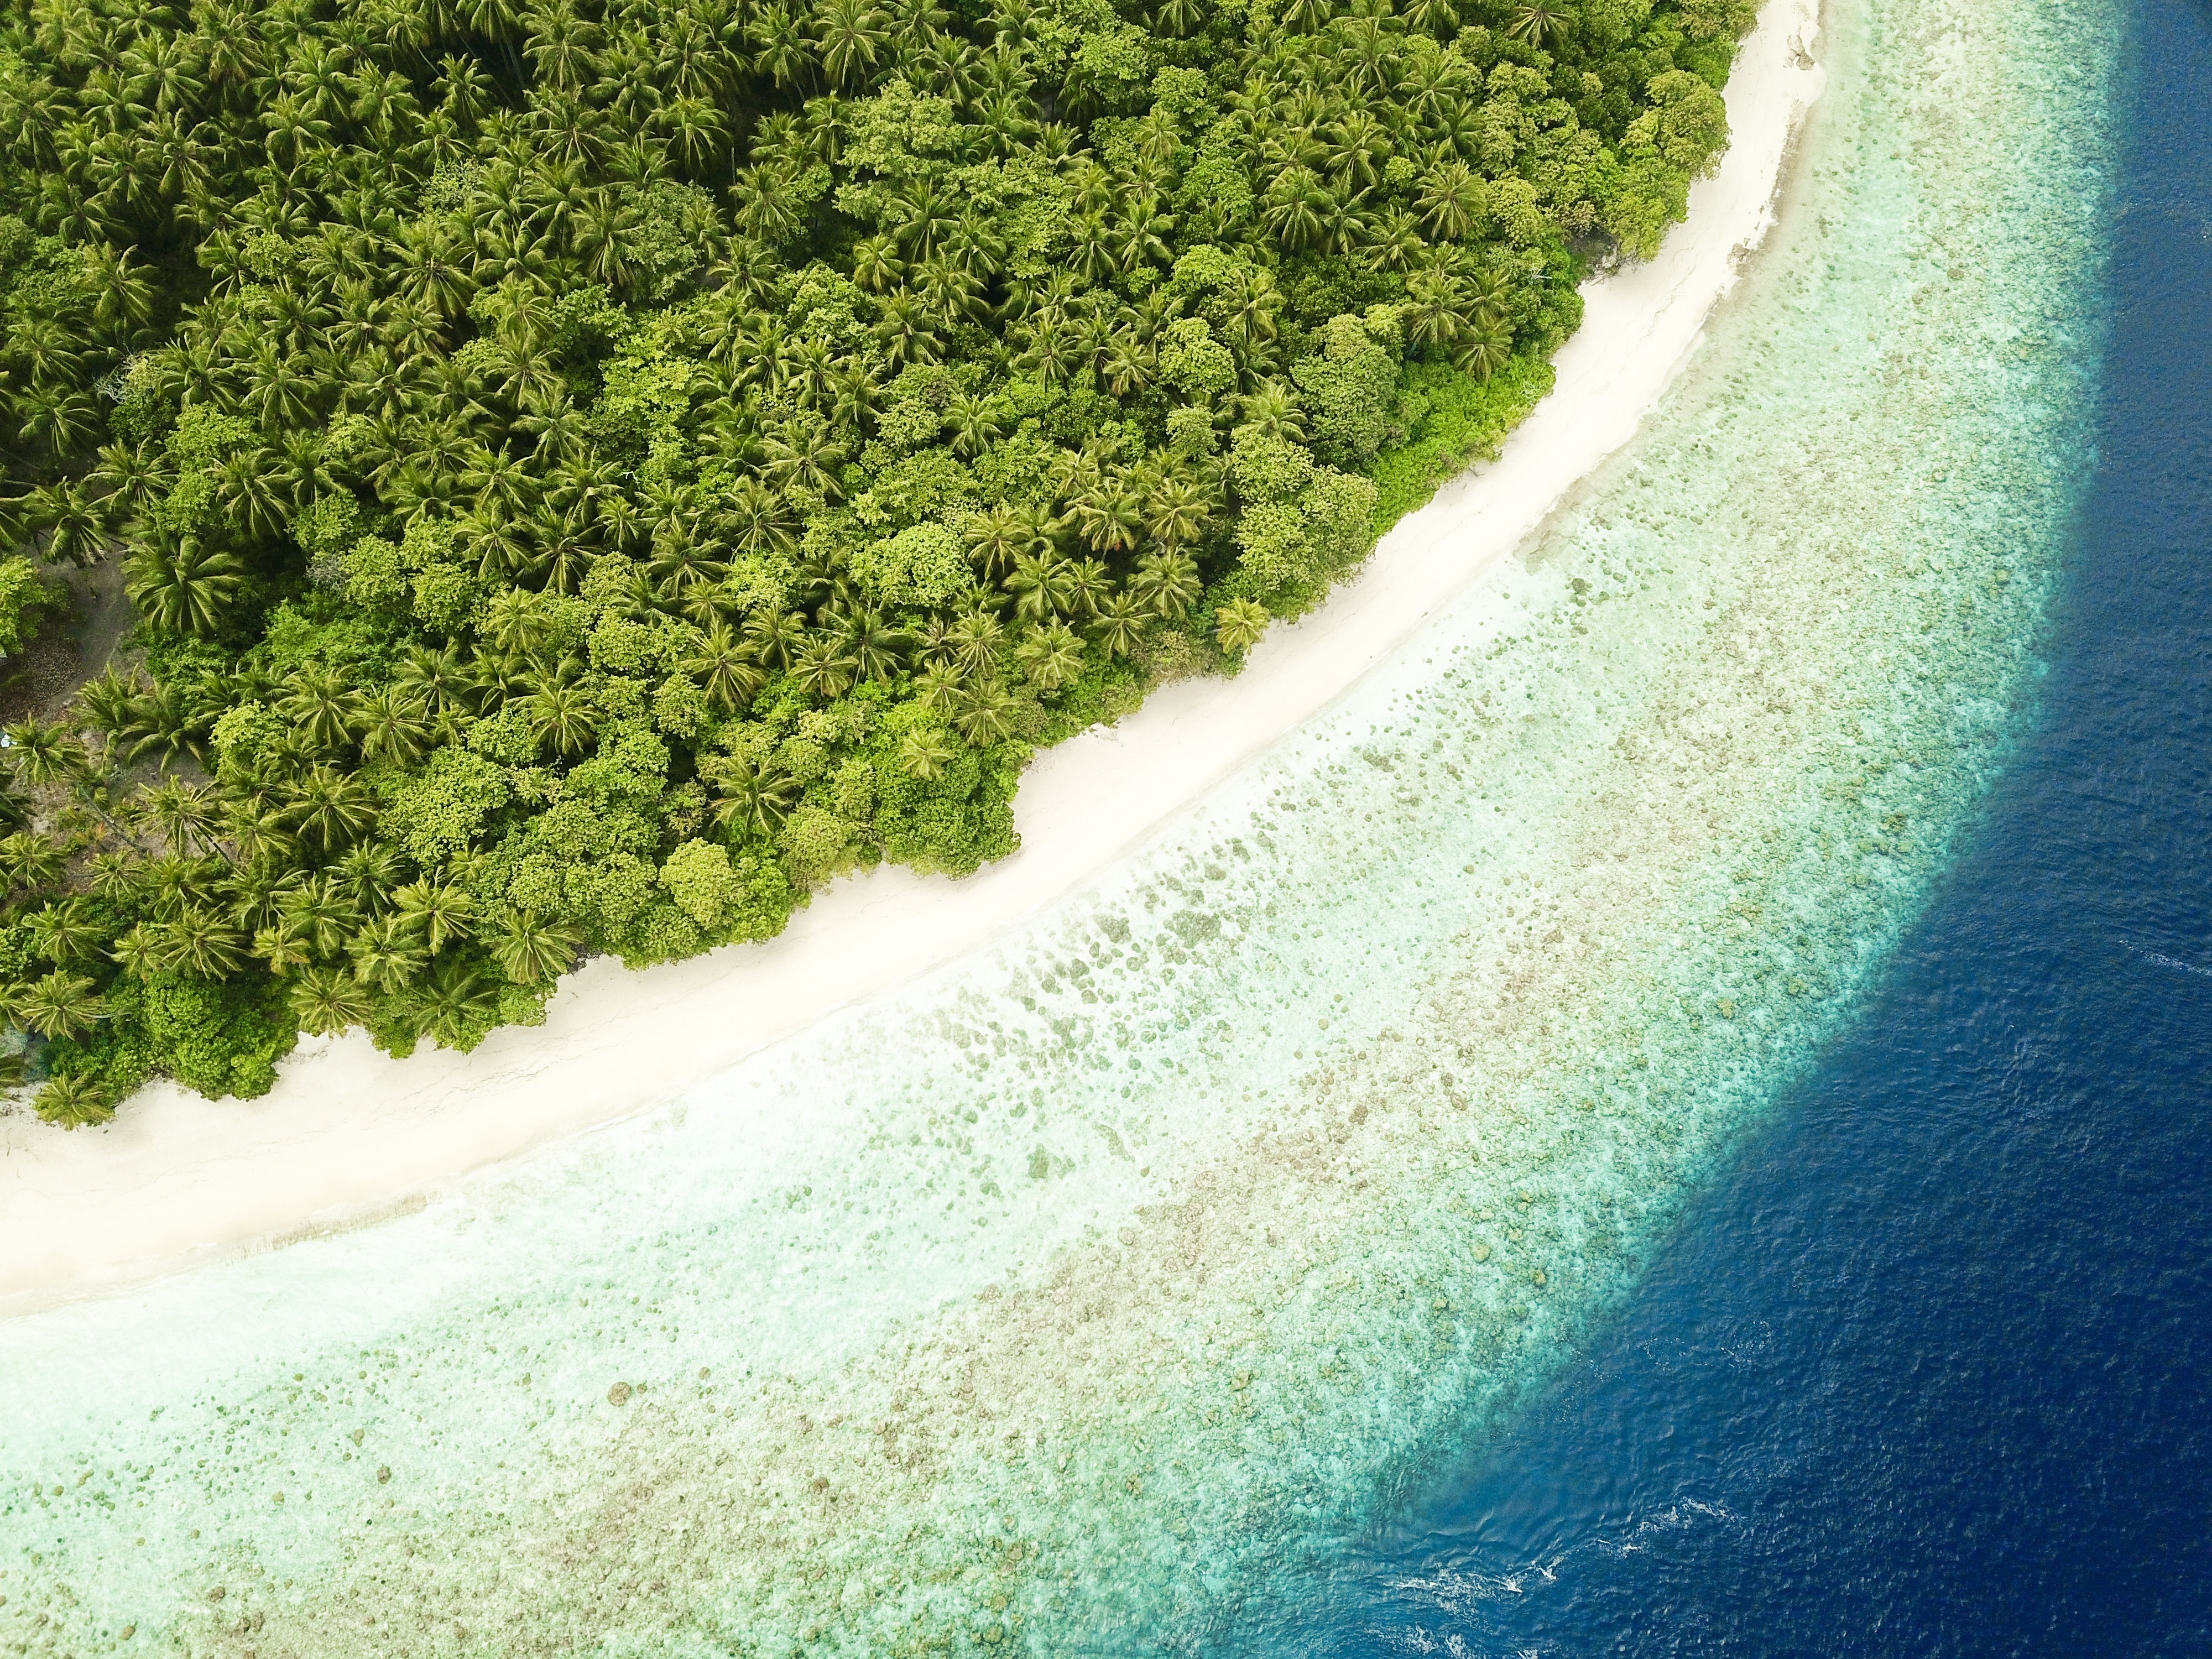 bird's-eye view photography of islet